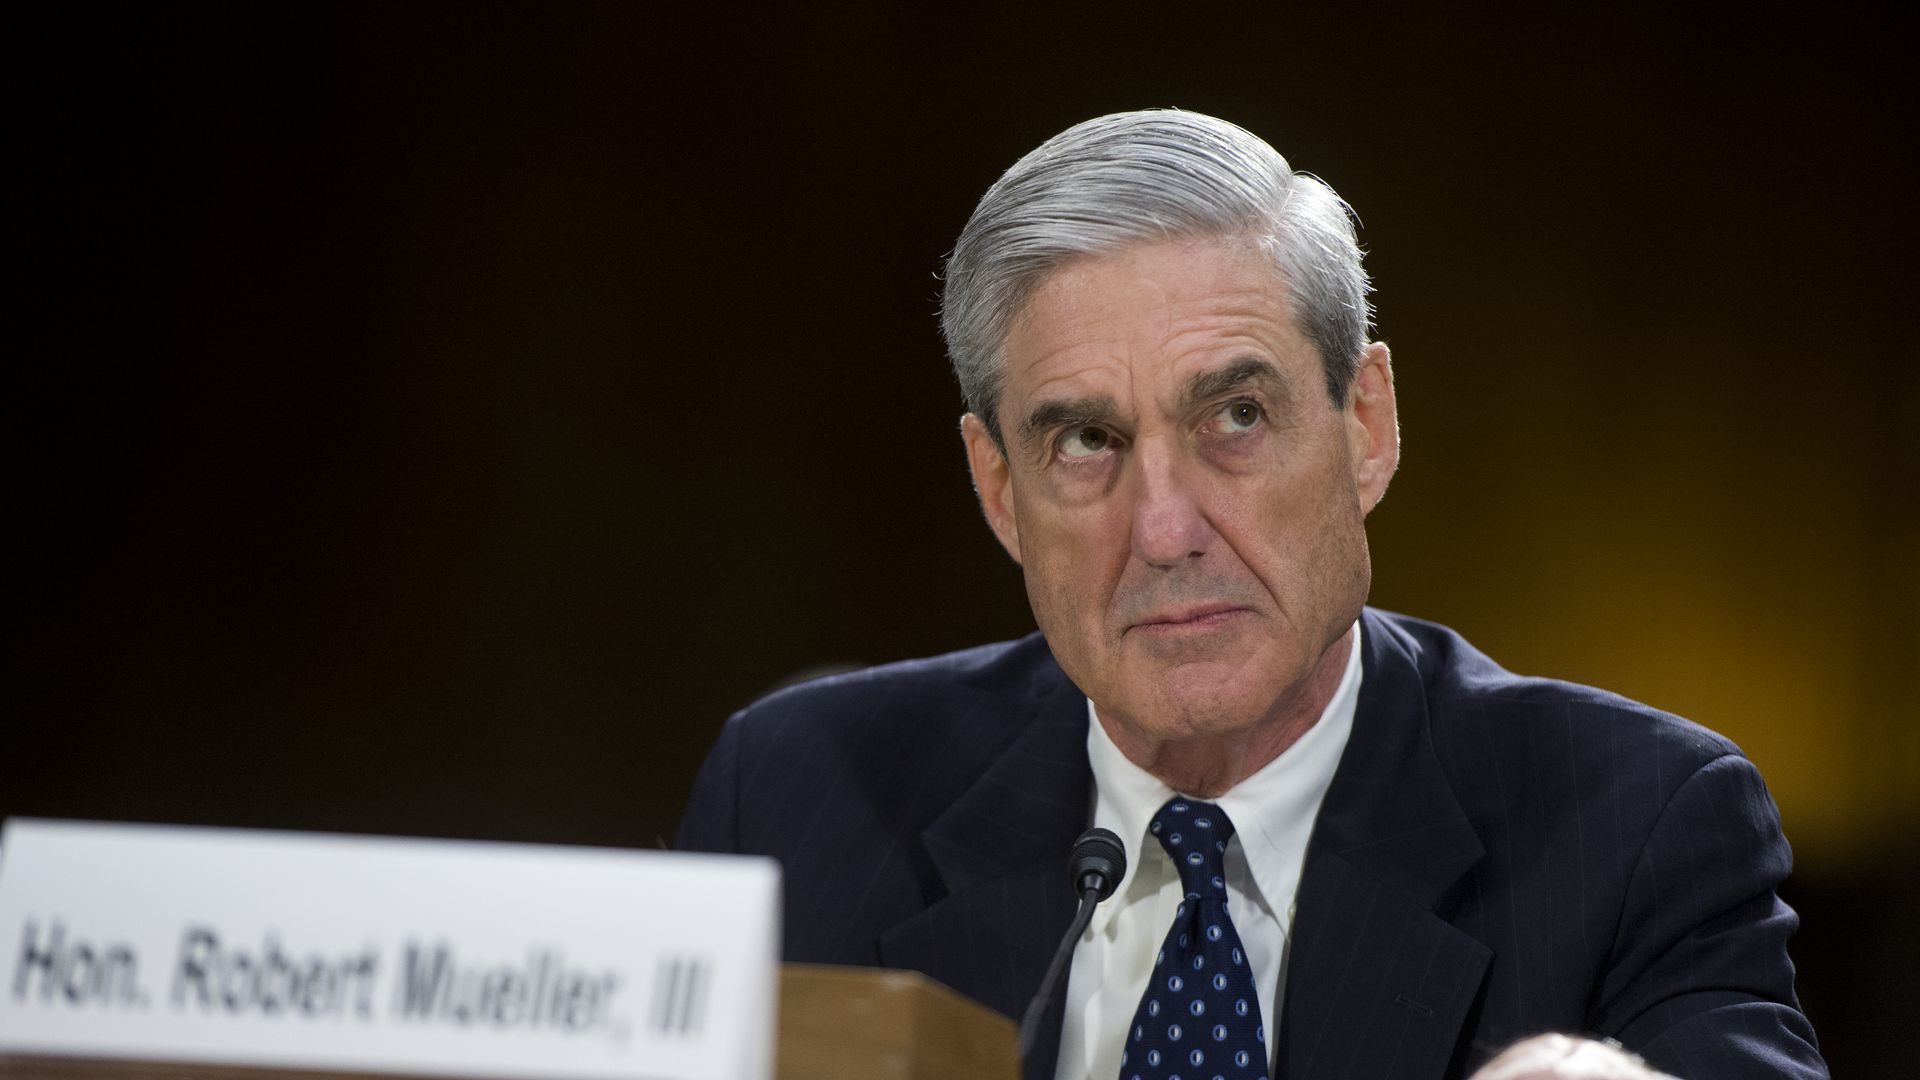 Mueller sits at desk looking stern.